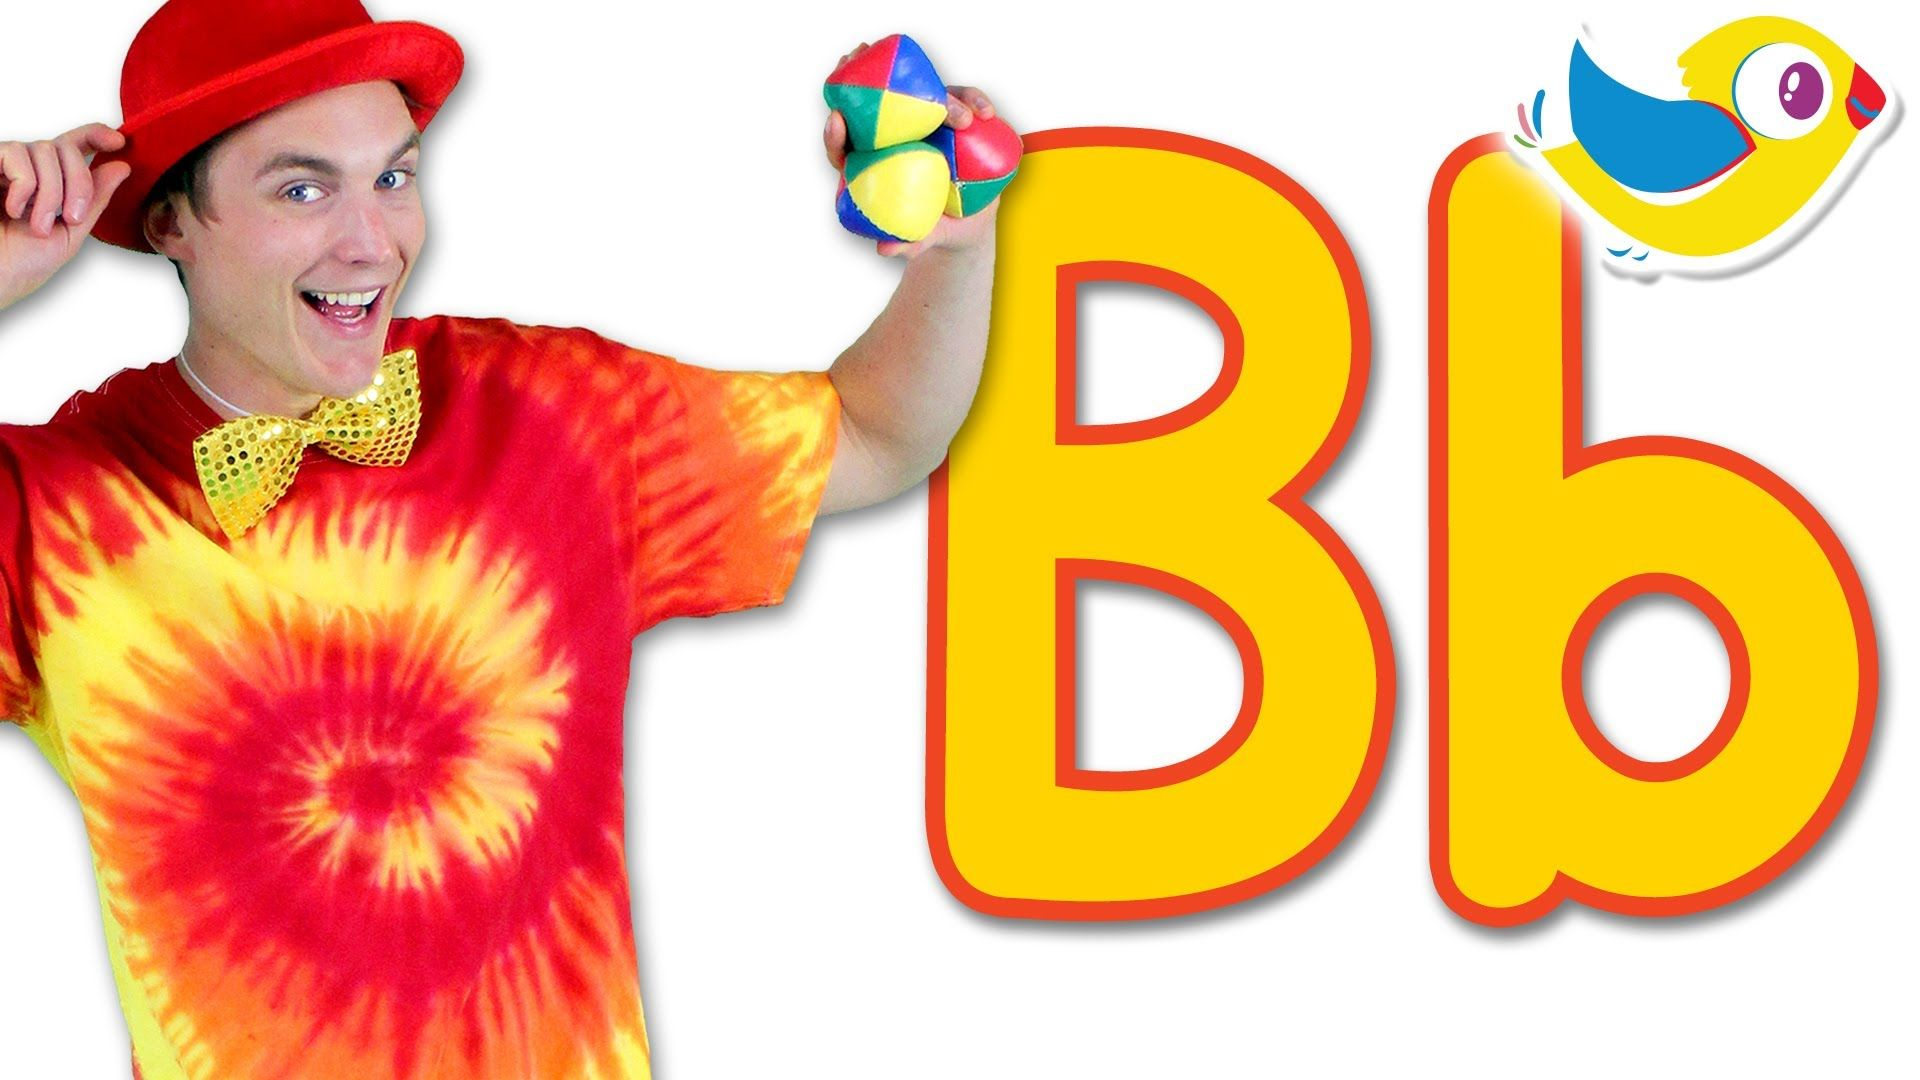 Learn the alphabet The Letter B Song, starring Will